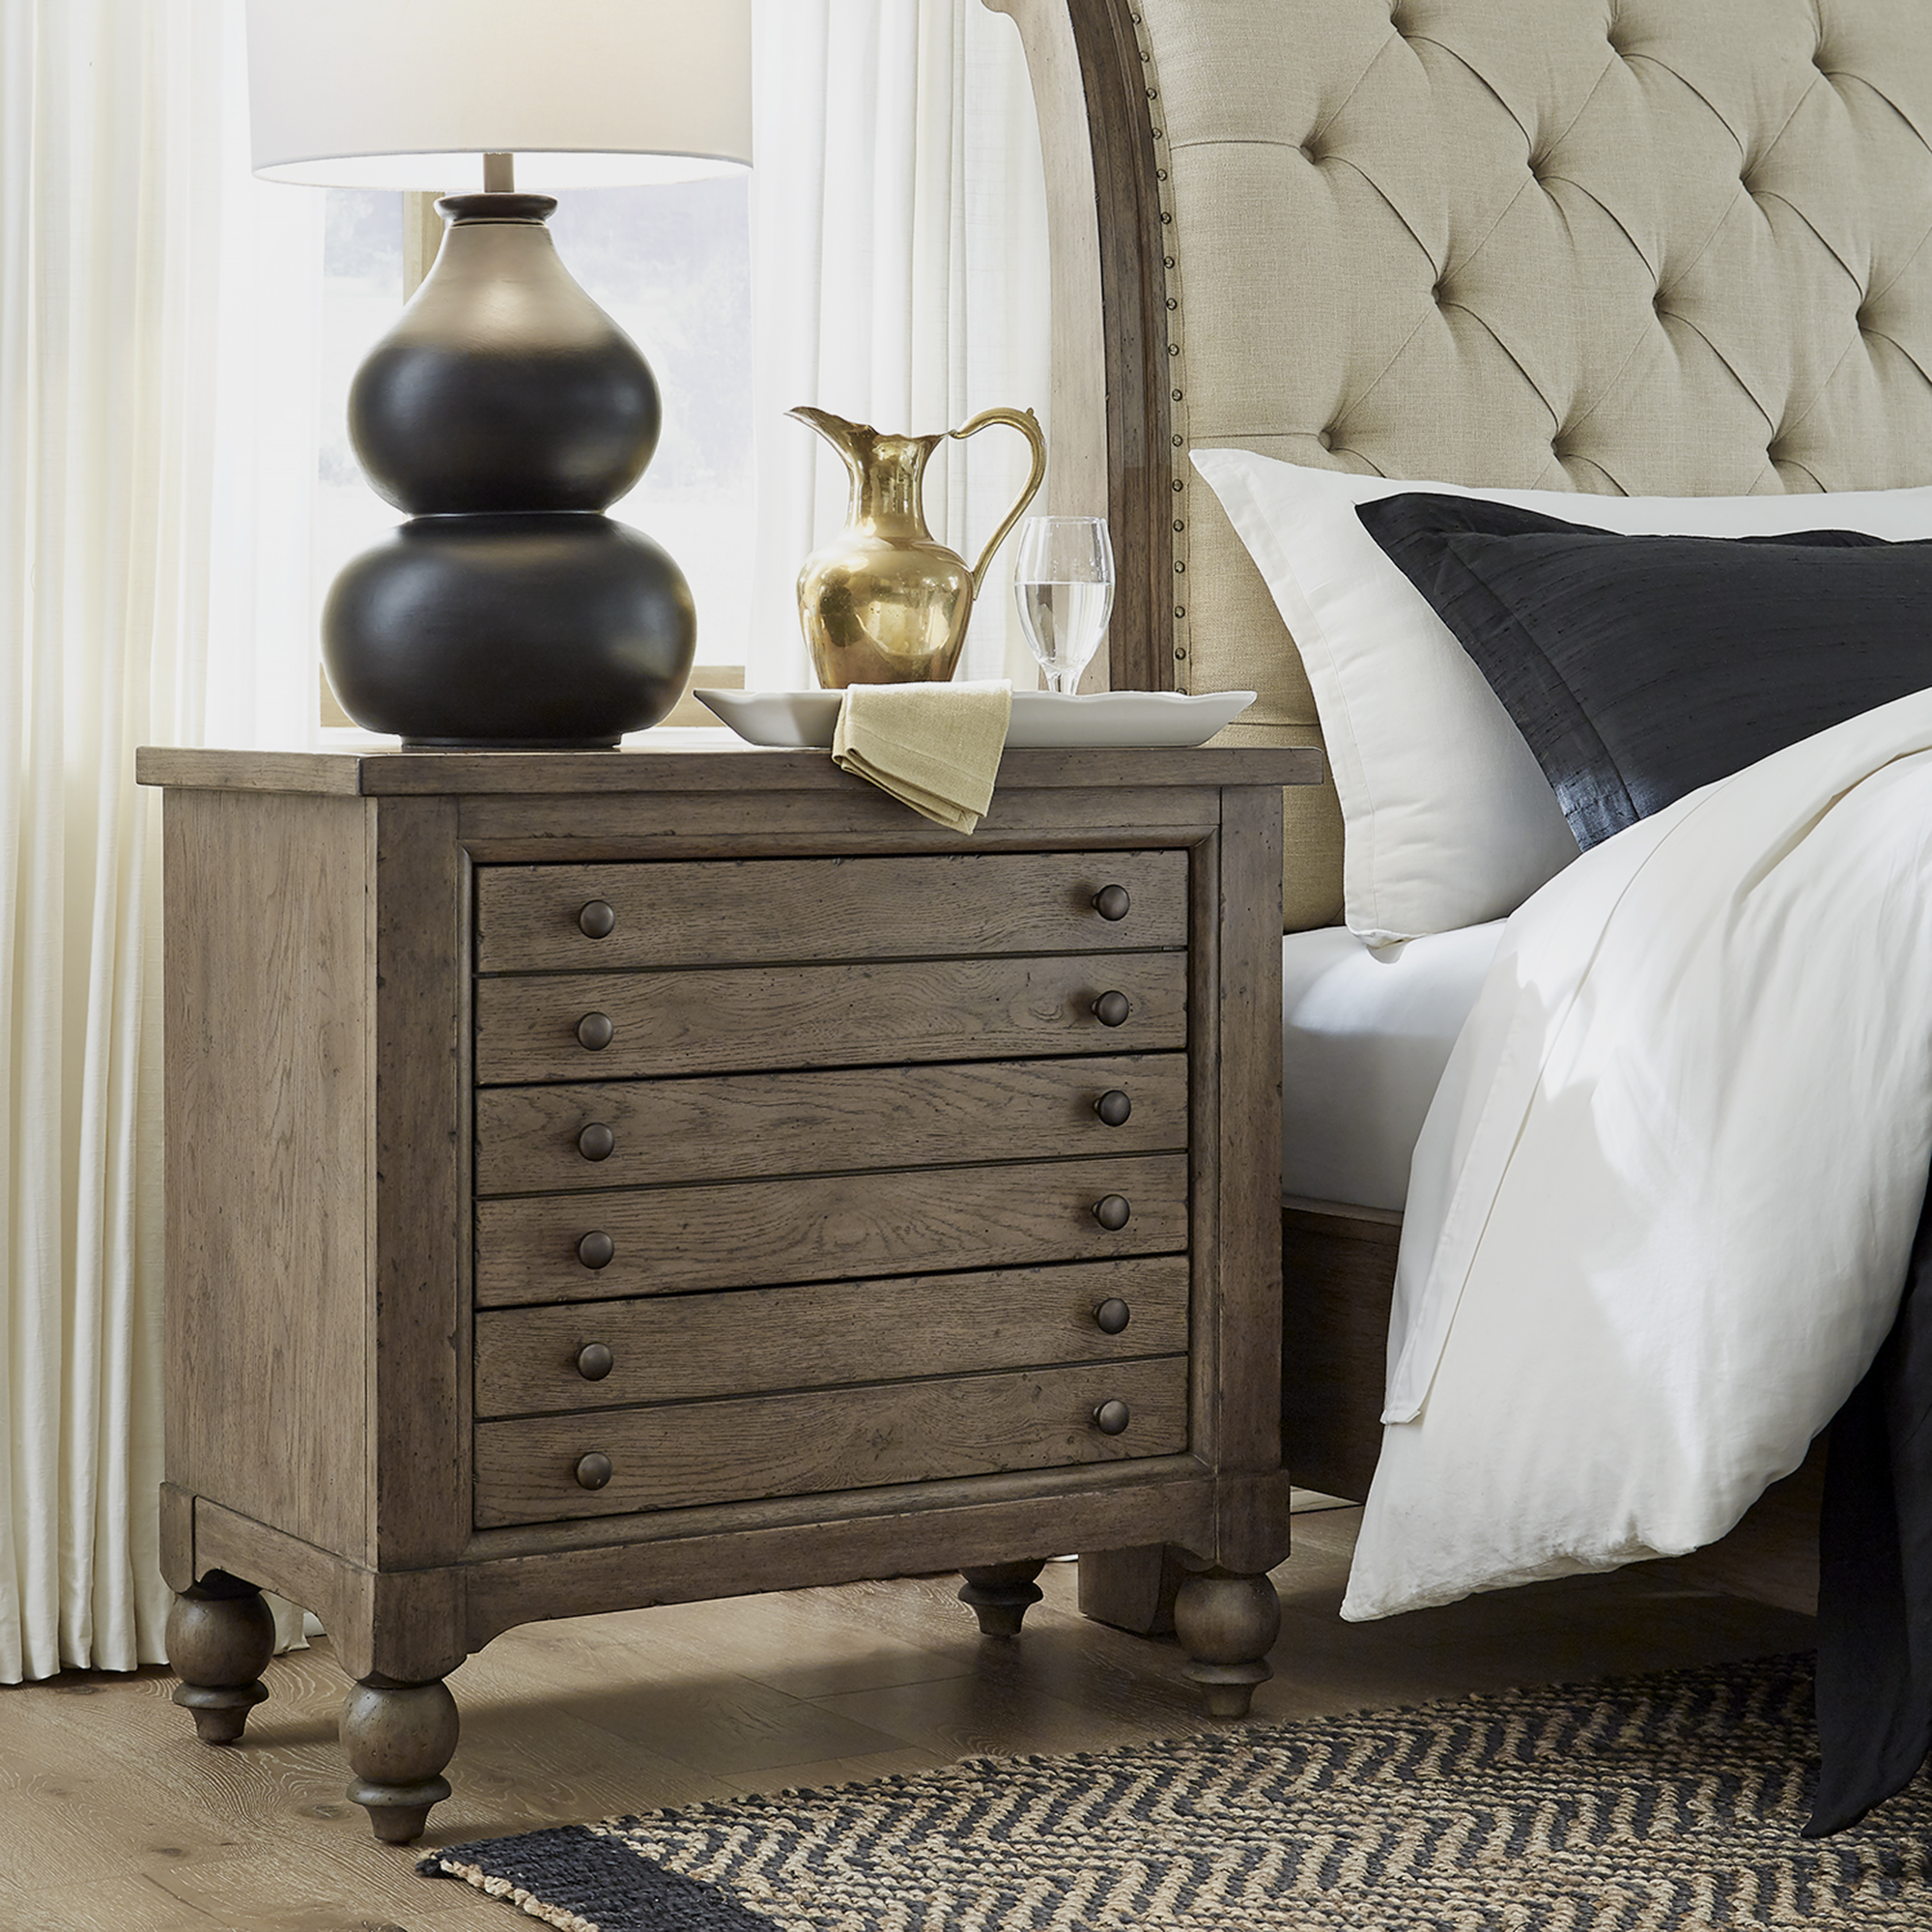 Americana Farmhouse Bedside Chest w/ Charging Station by Liberty Furniture at Story & Lee Furniture